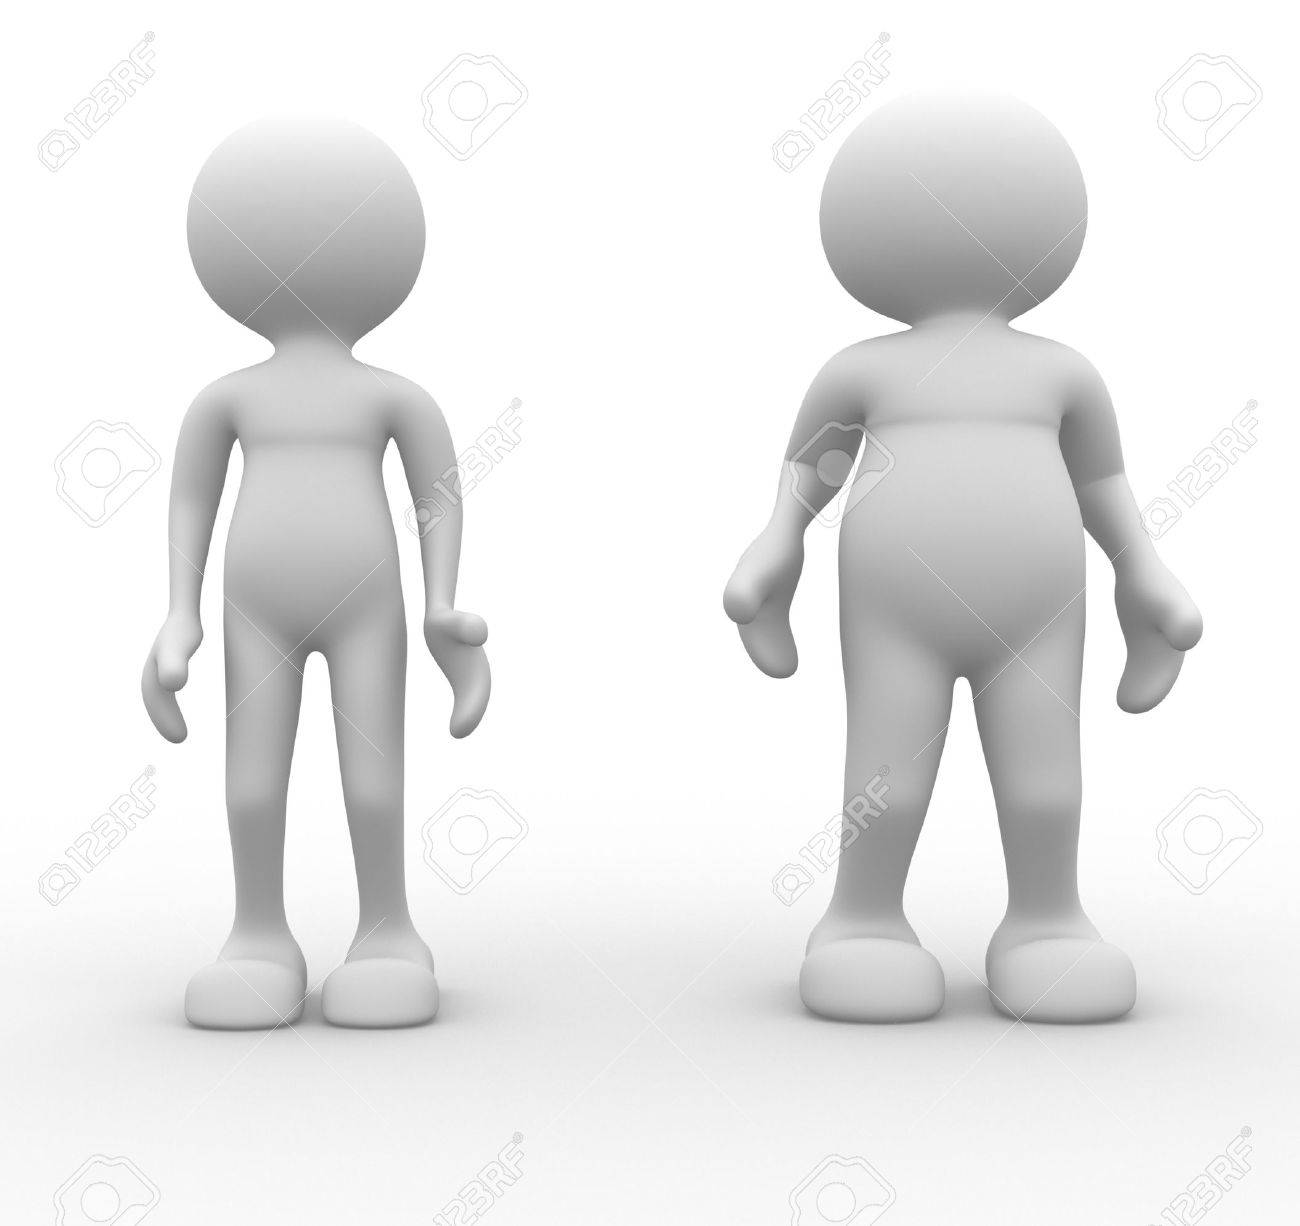 3d people - men, person. Fat and weak. Concept of diet Stock Photo - 14814980